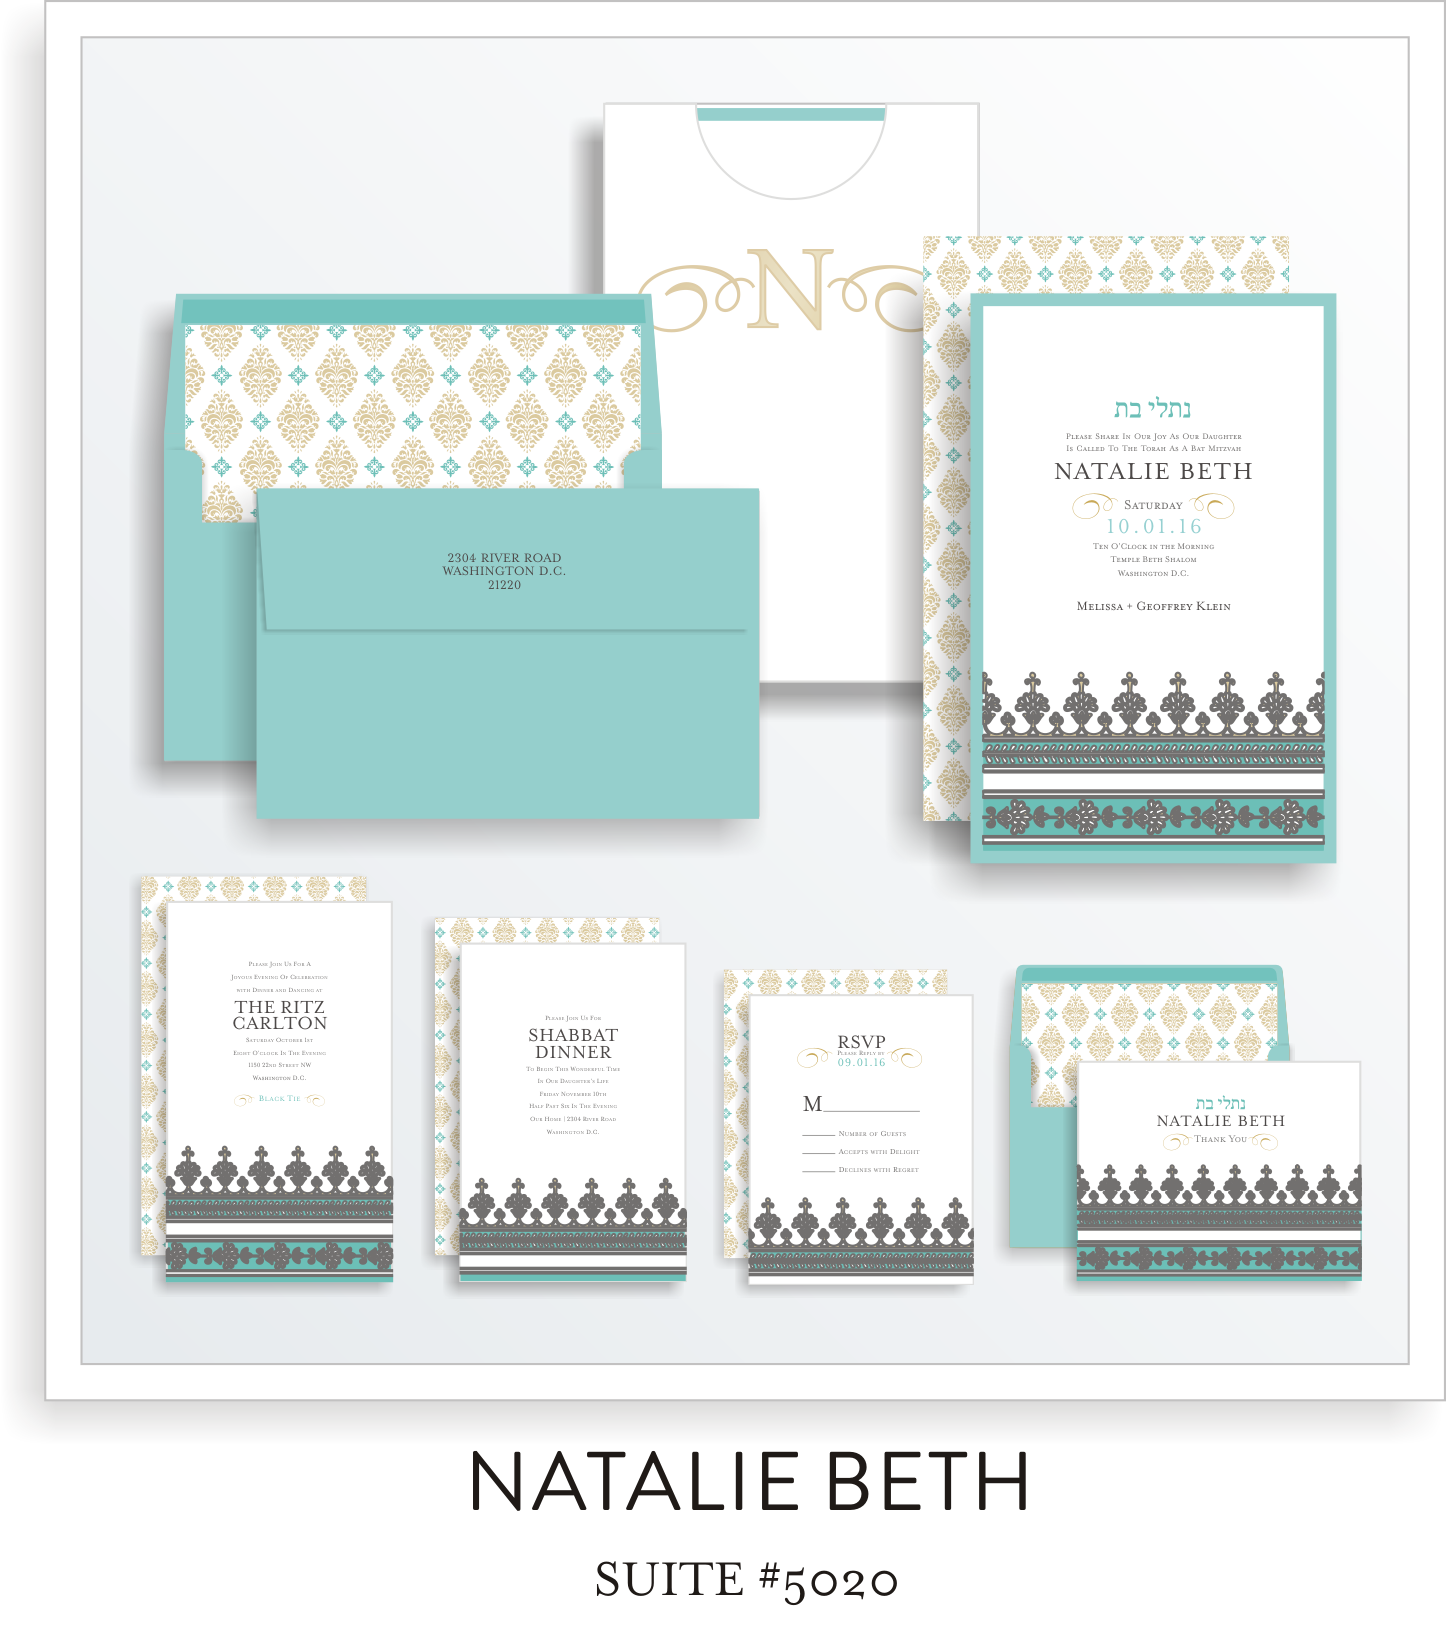 bat mitzvah invitations 5020